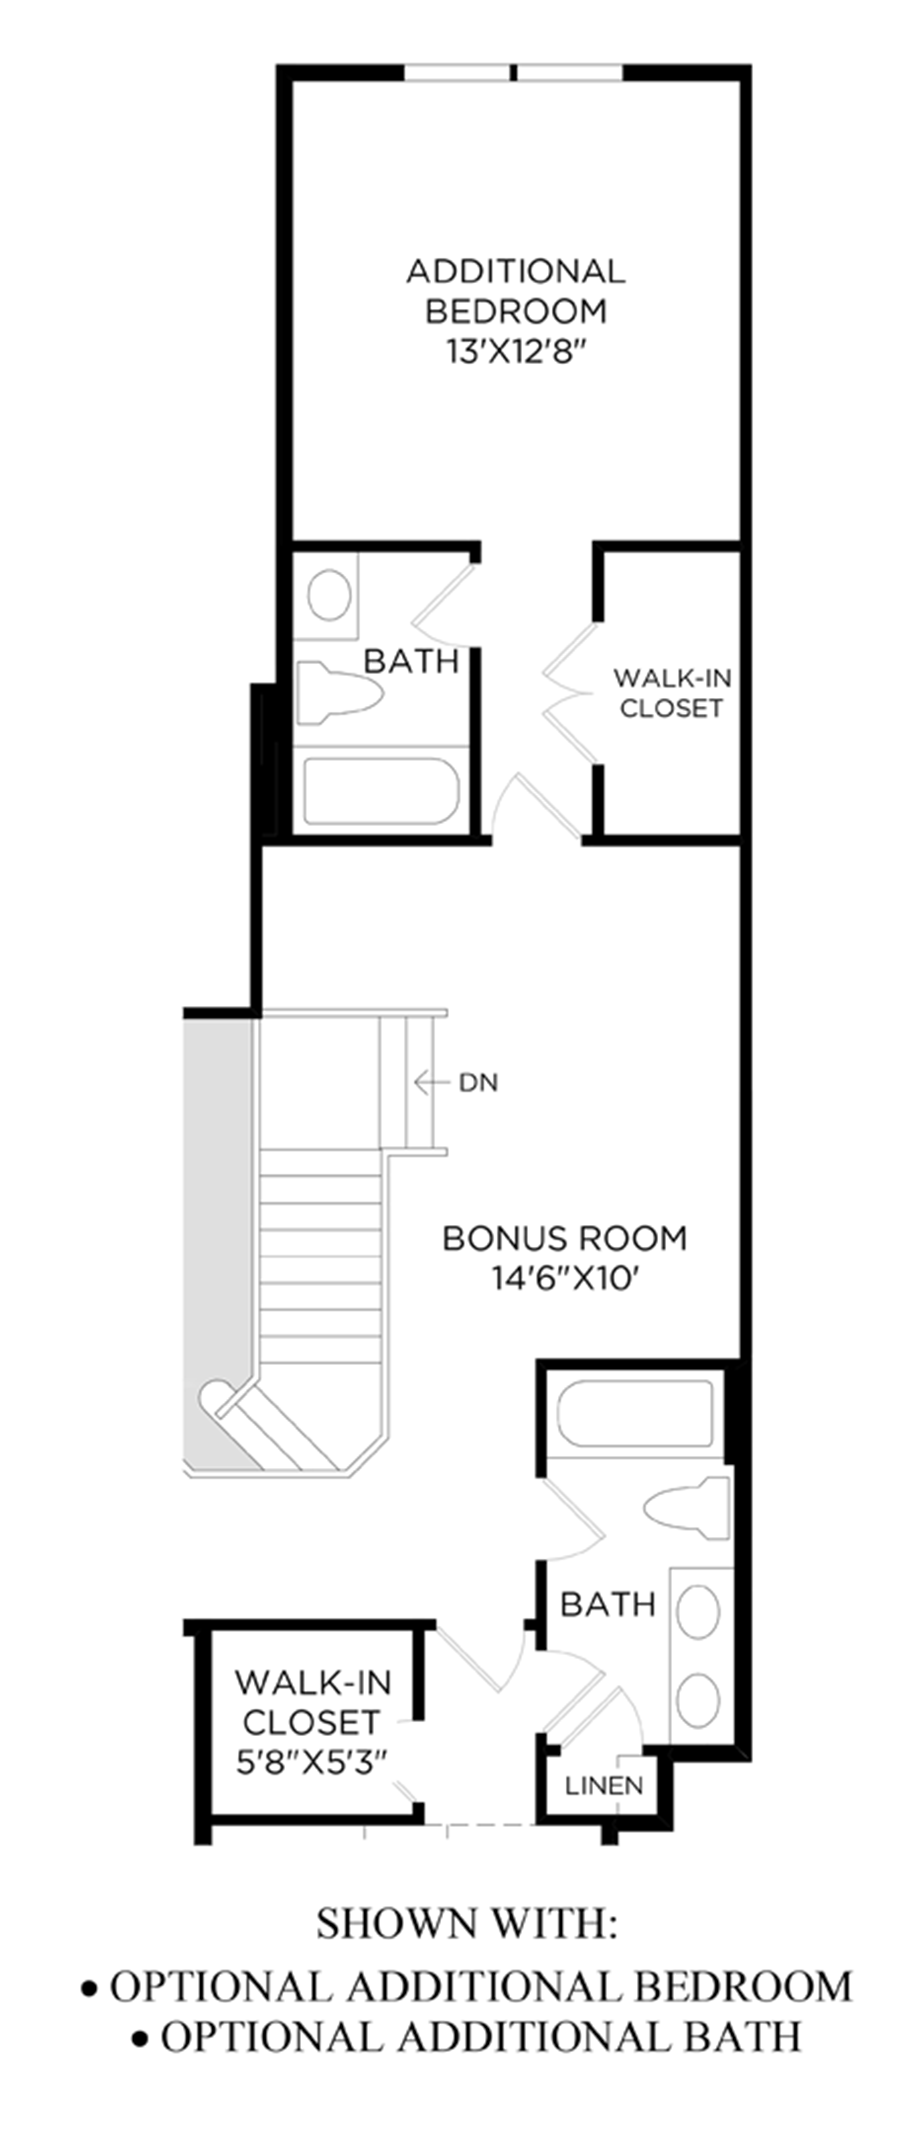 Optional Additional Bedroom & Additional Bath Floor Plan